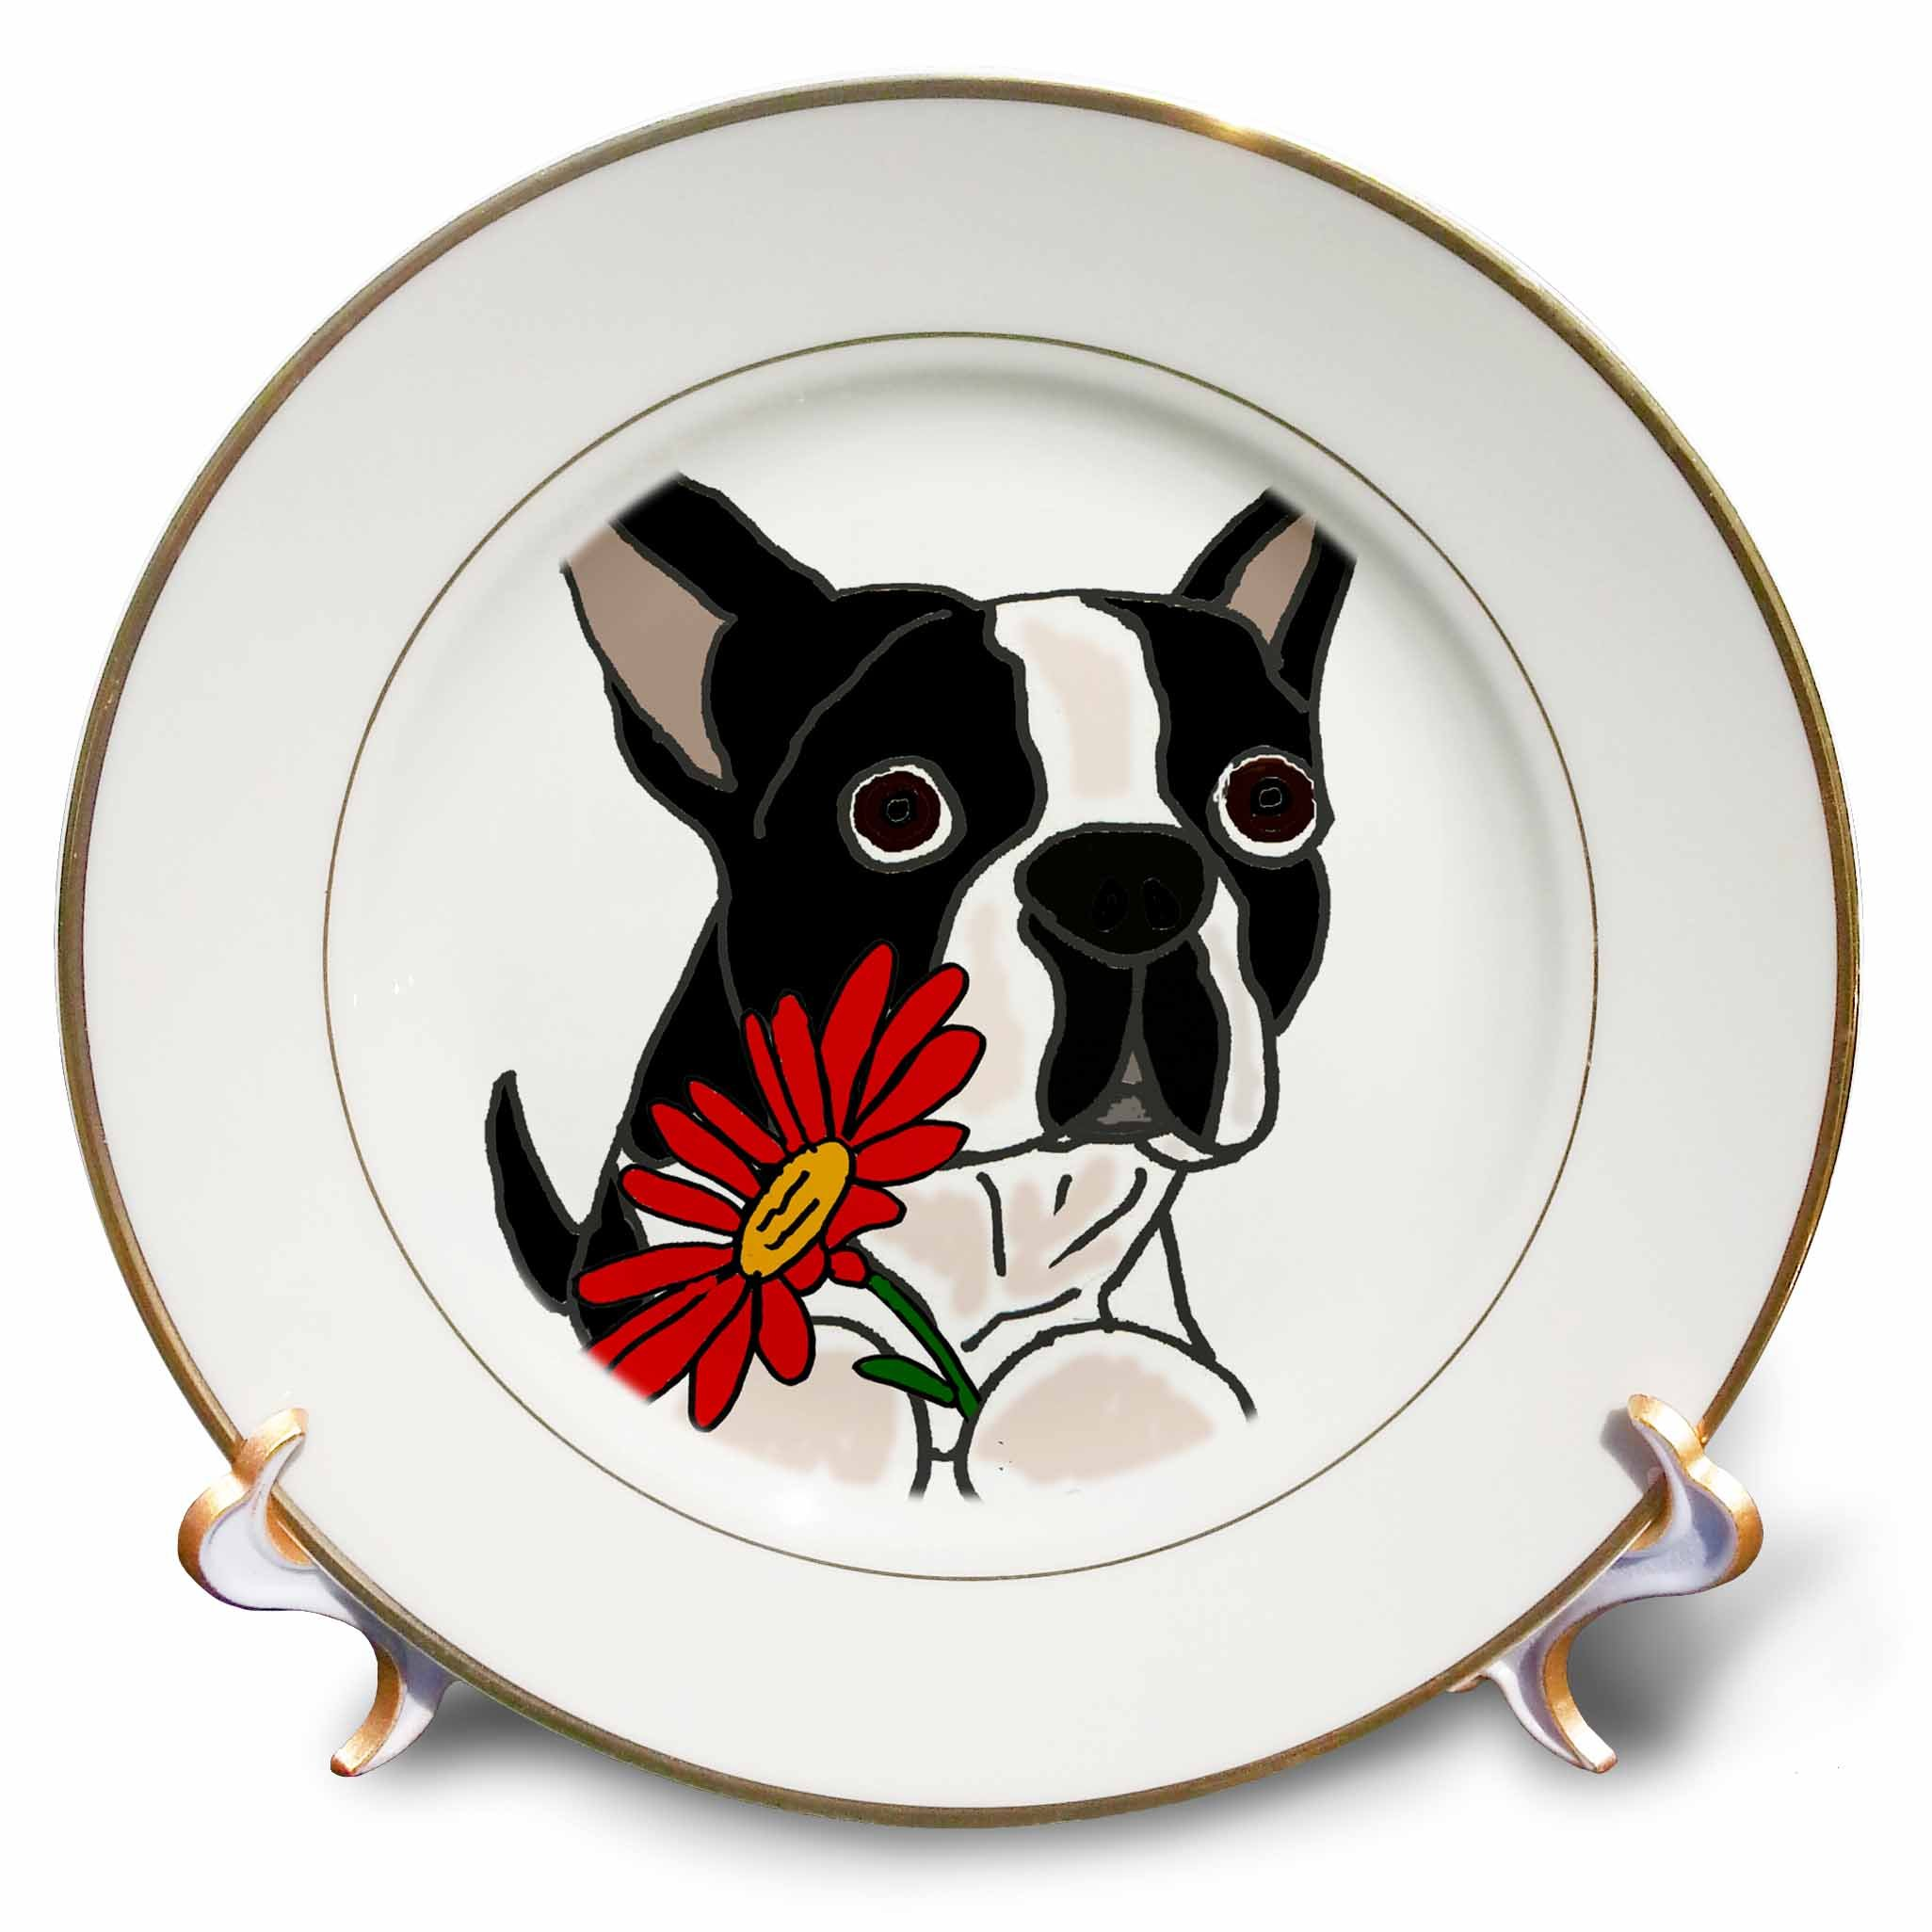 3dRose Funny Cute Boston Terrier Puppy Dog with Red Daisy Flower Plate, 8""